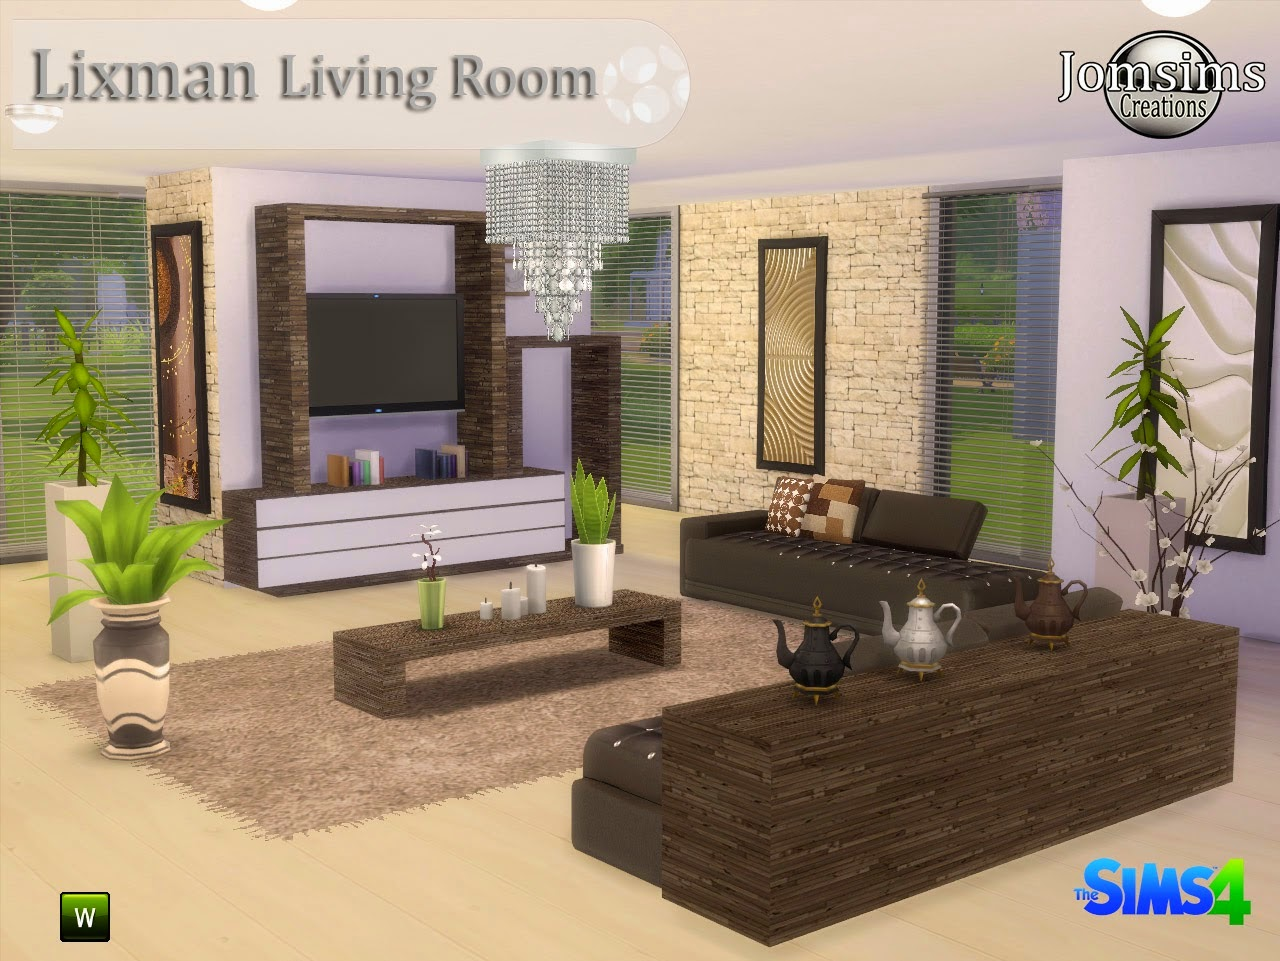 My sims 4 blog lixman living by jomsims for Living room sims 4